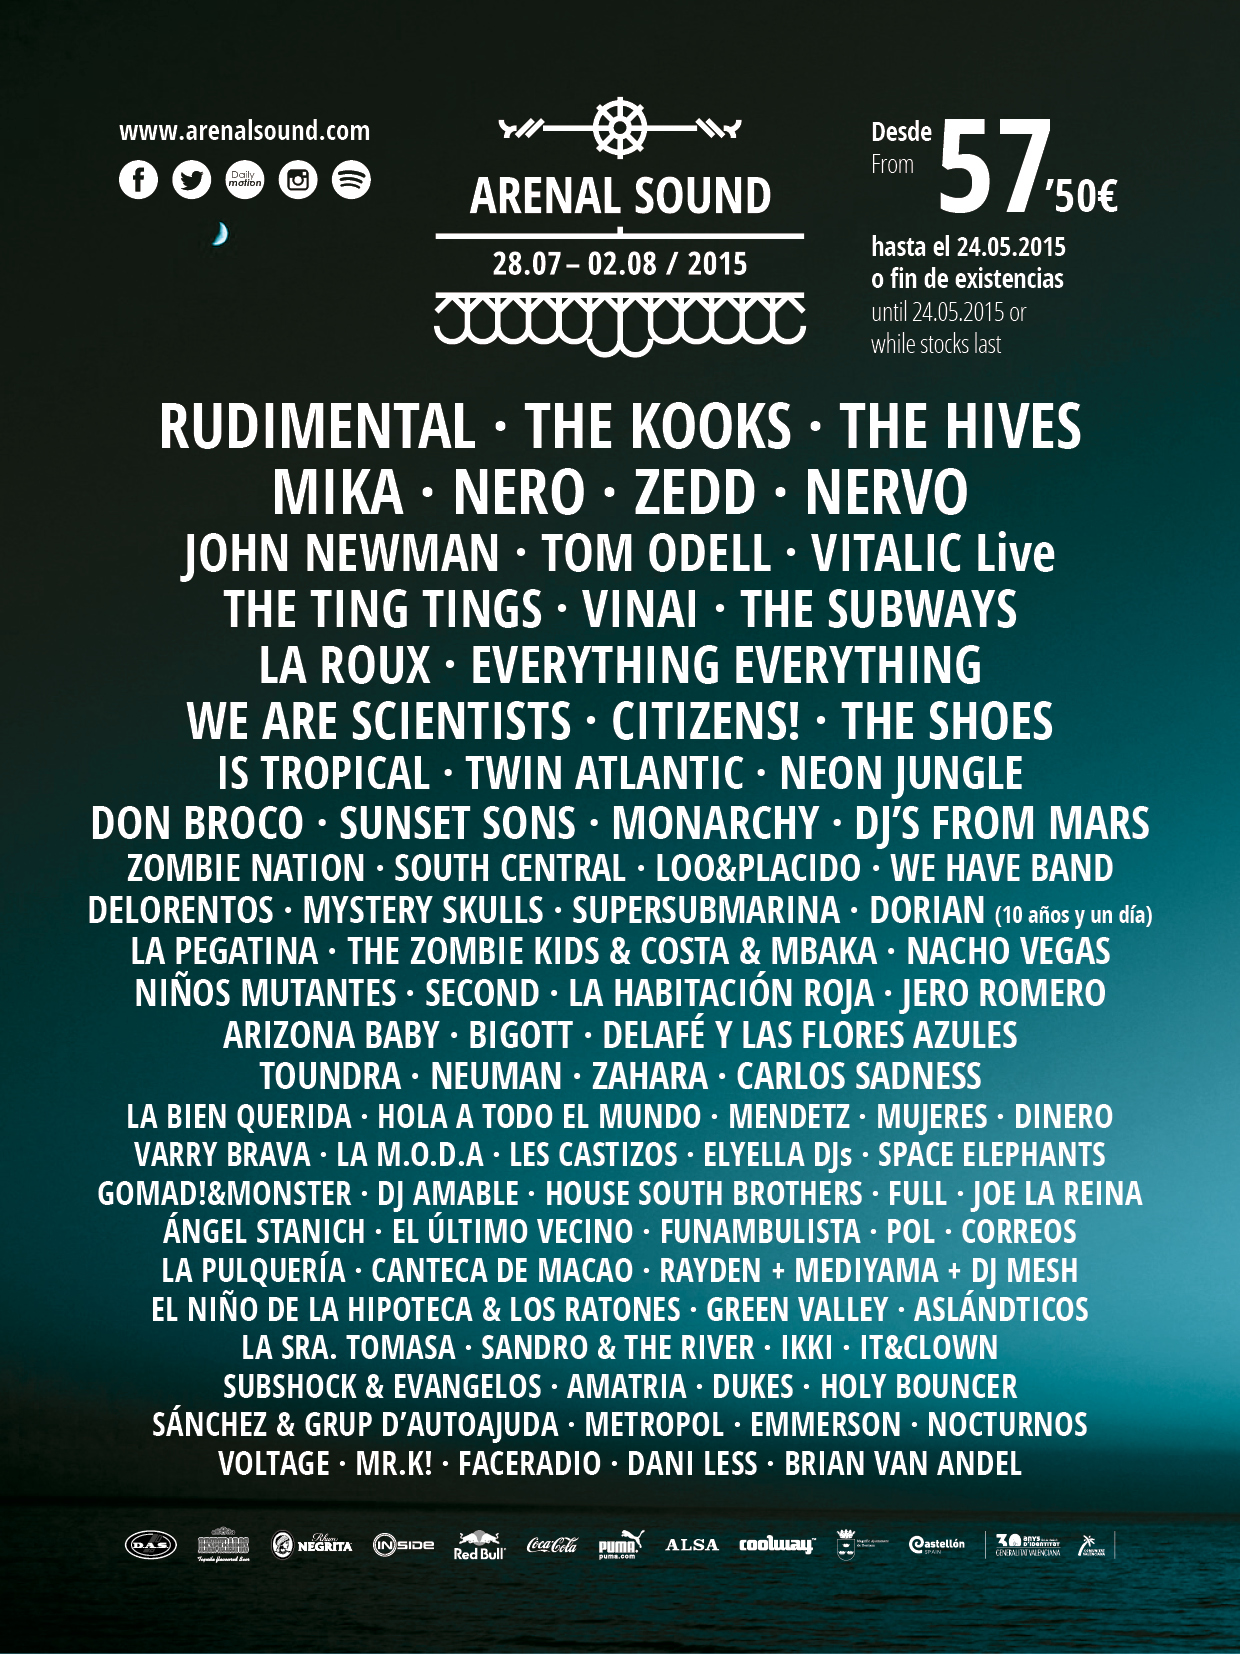 arenal sound 2015 the hives